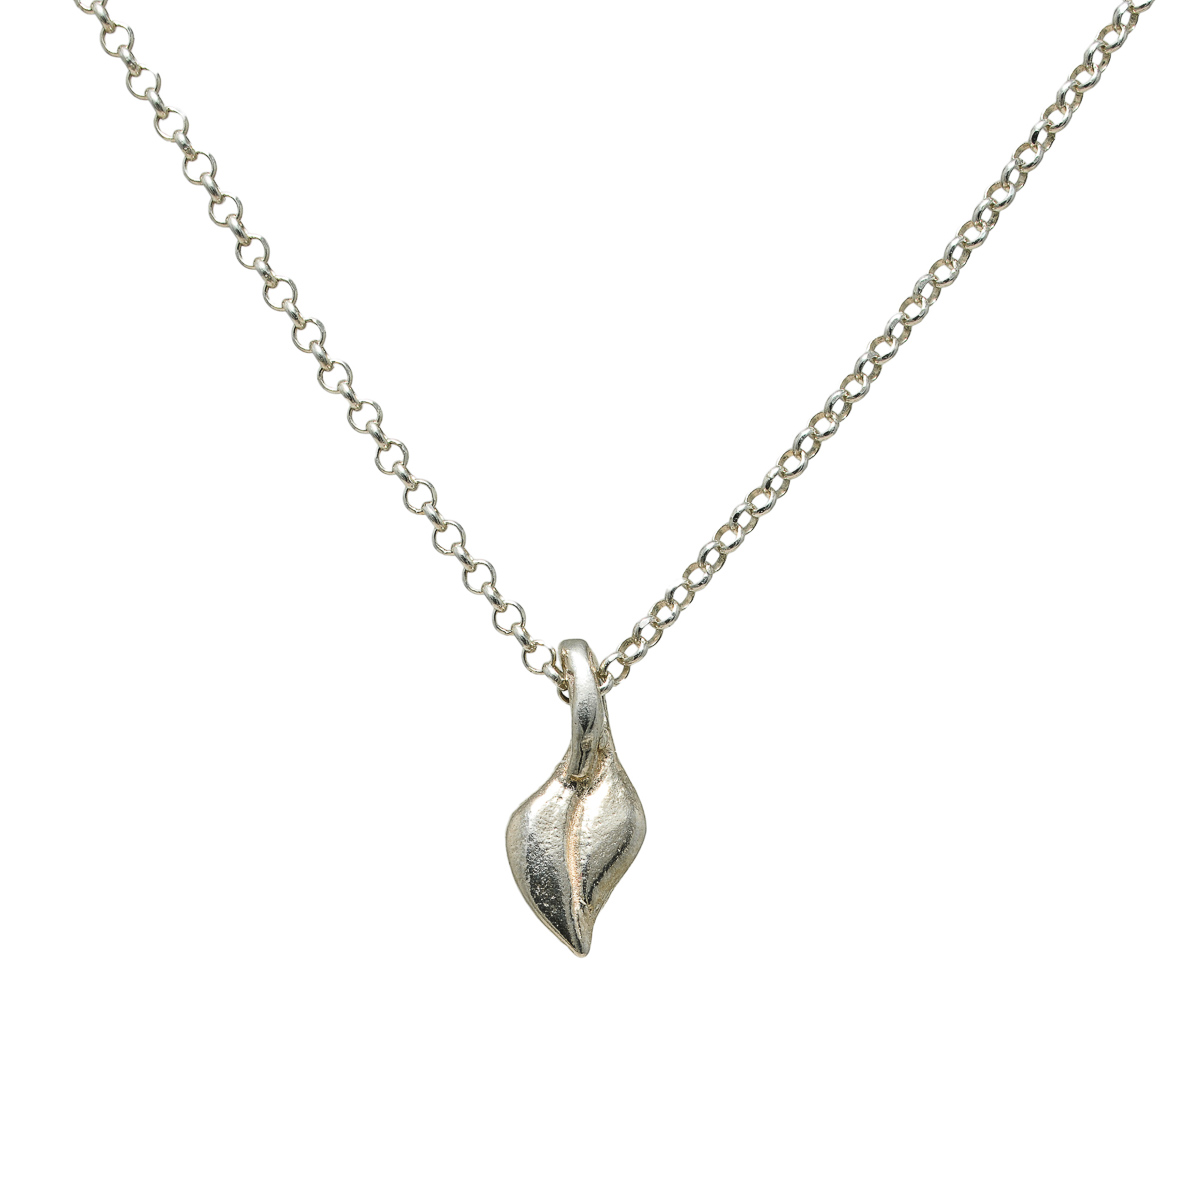 Tiny leaf necklace, sterling silver. Design and handmade for Bead A Boo jewelry by Katerina Glinou.